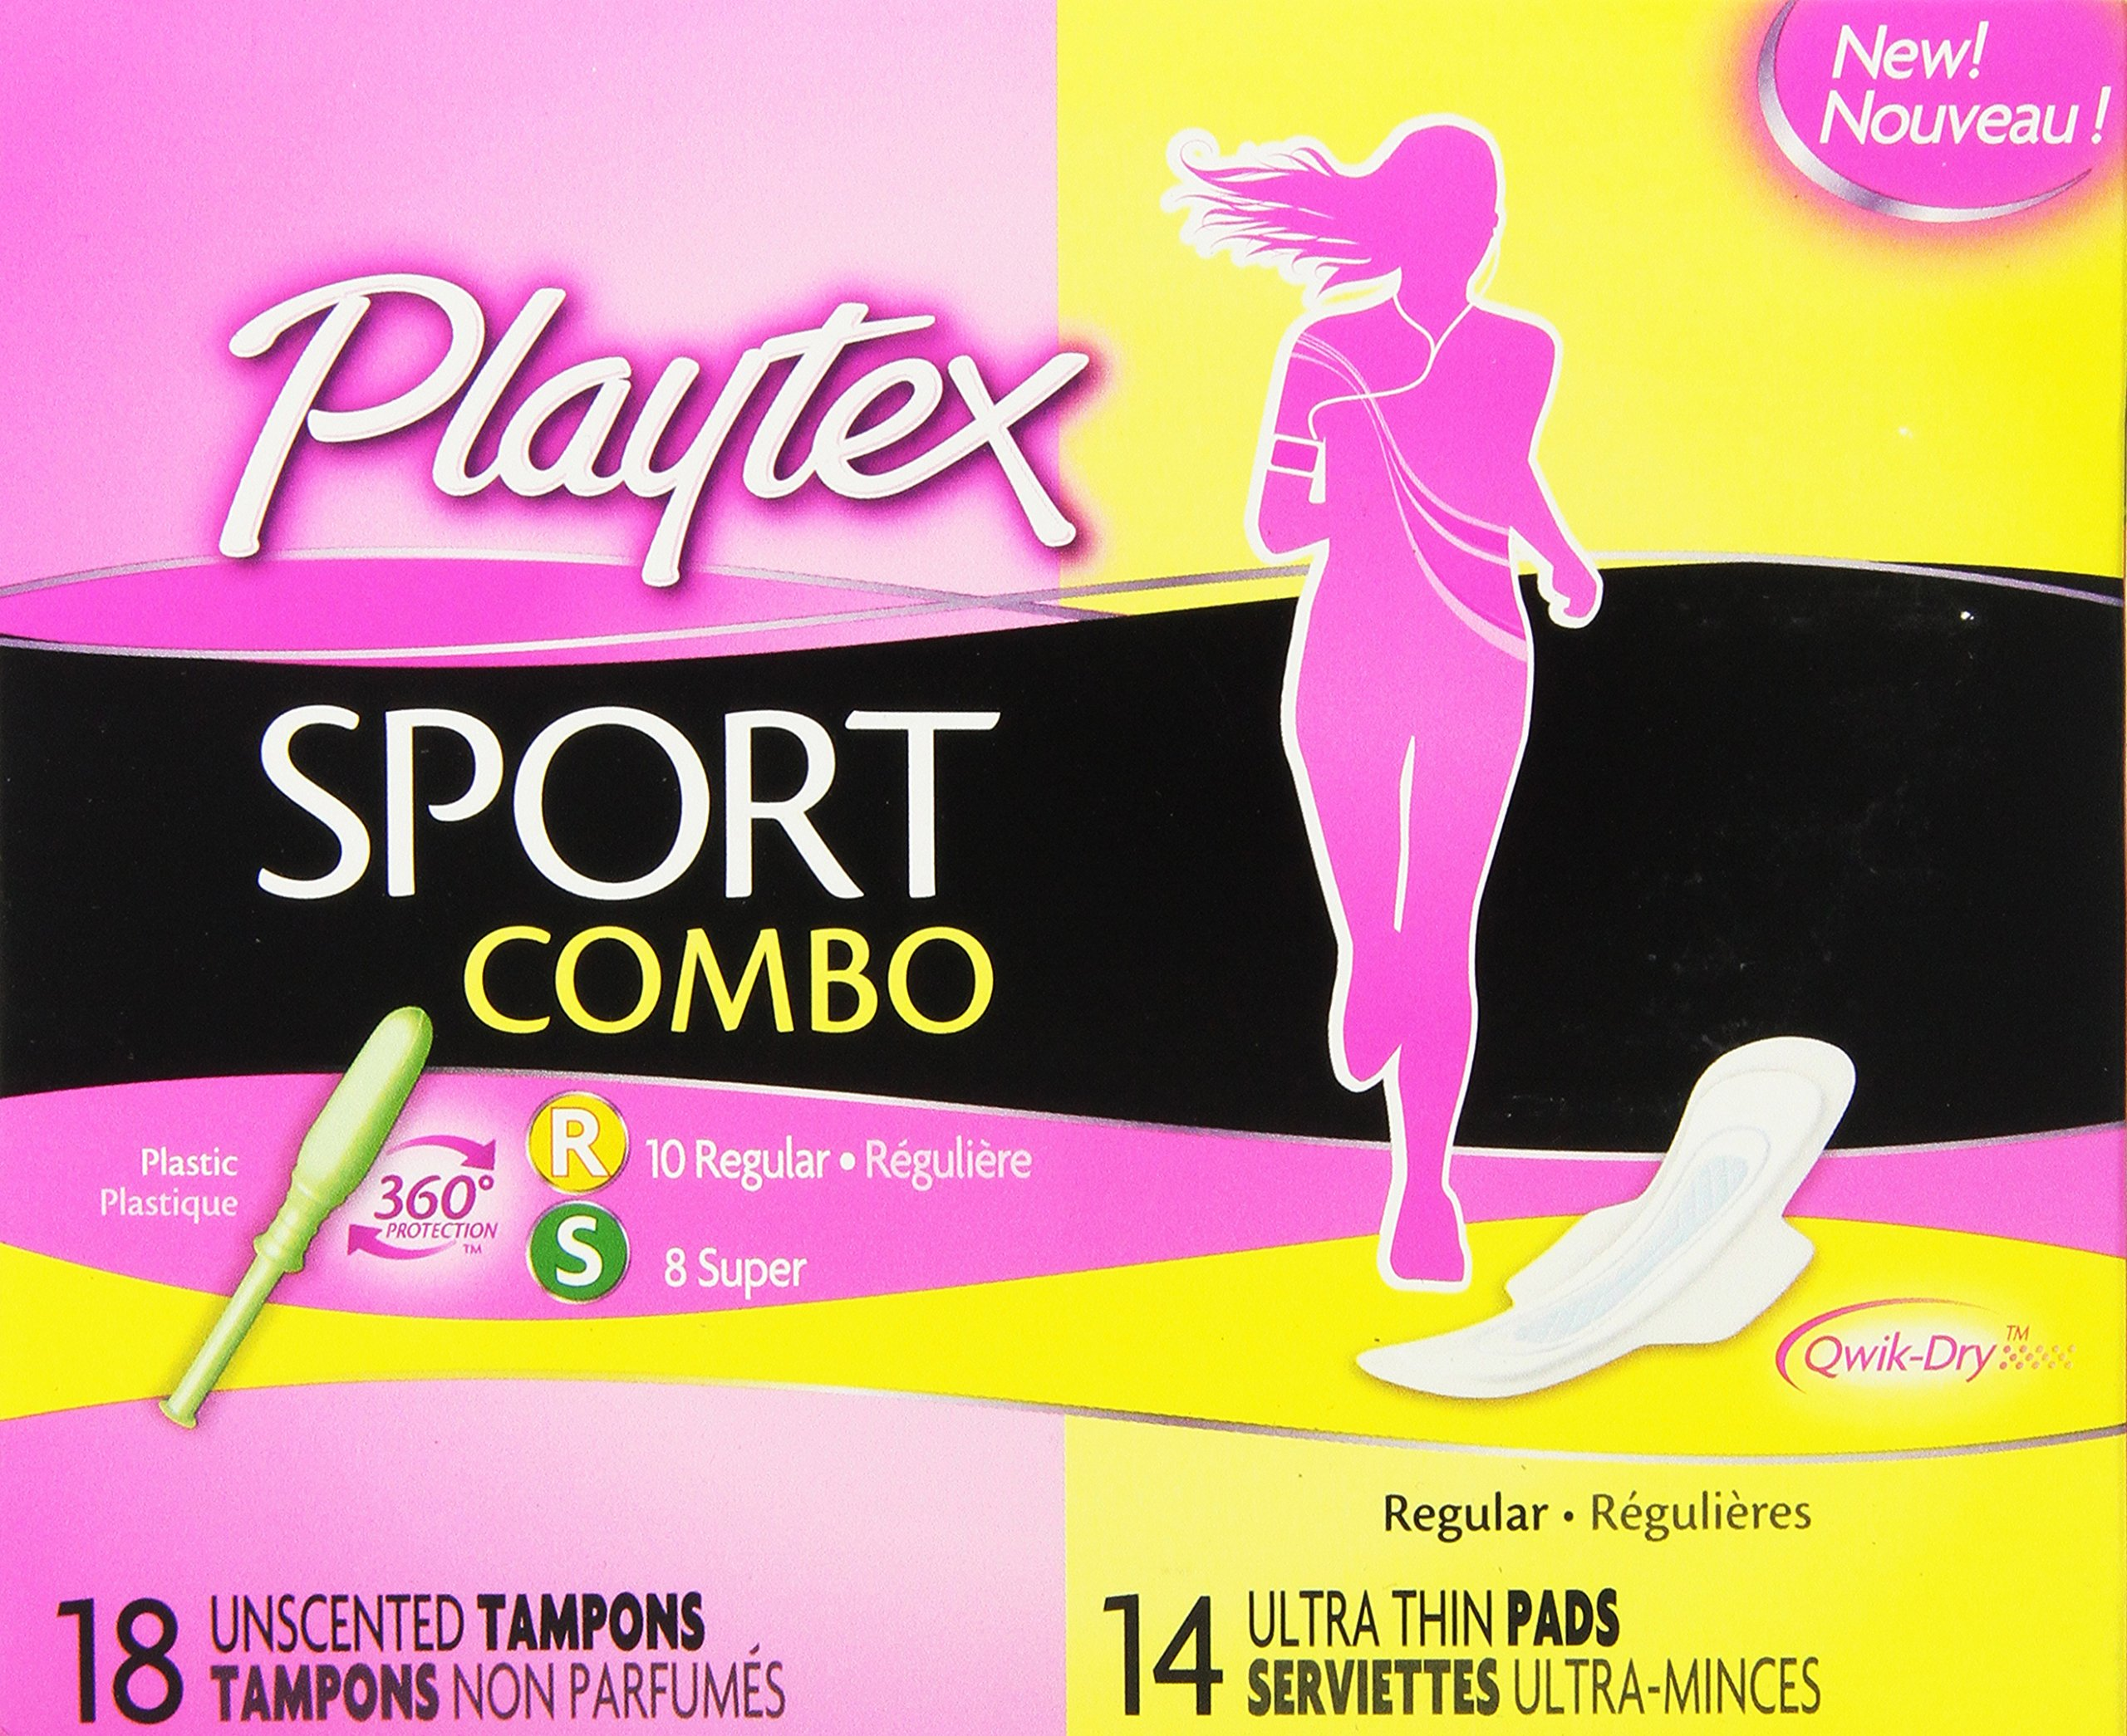 Playtex Sport Combo - 18 Unscented Tampons, 14 Ultra Thin Pads, 32 Count Total